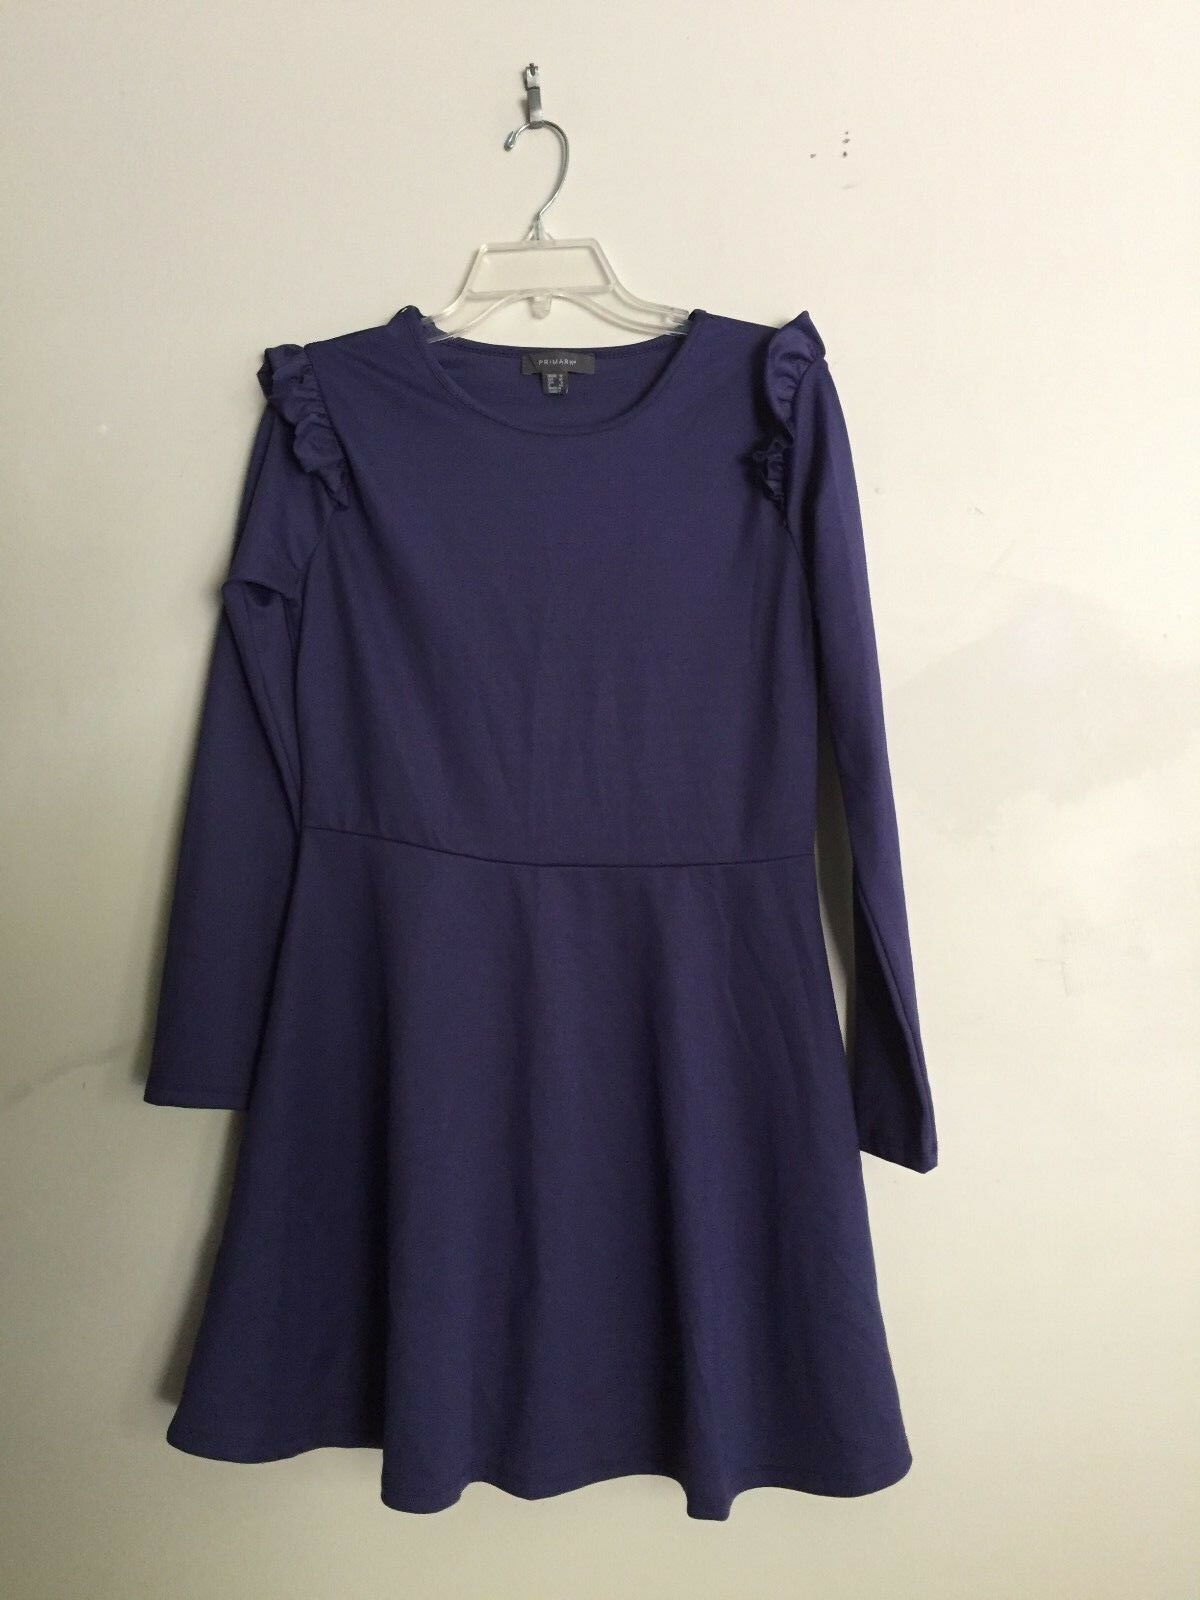 PRIMARK WOMEN MIDNIGHT blueE DRESS SIZE 8